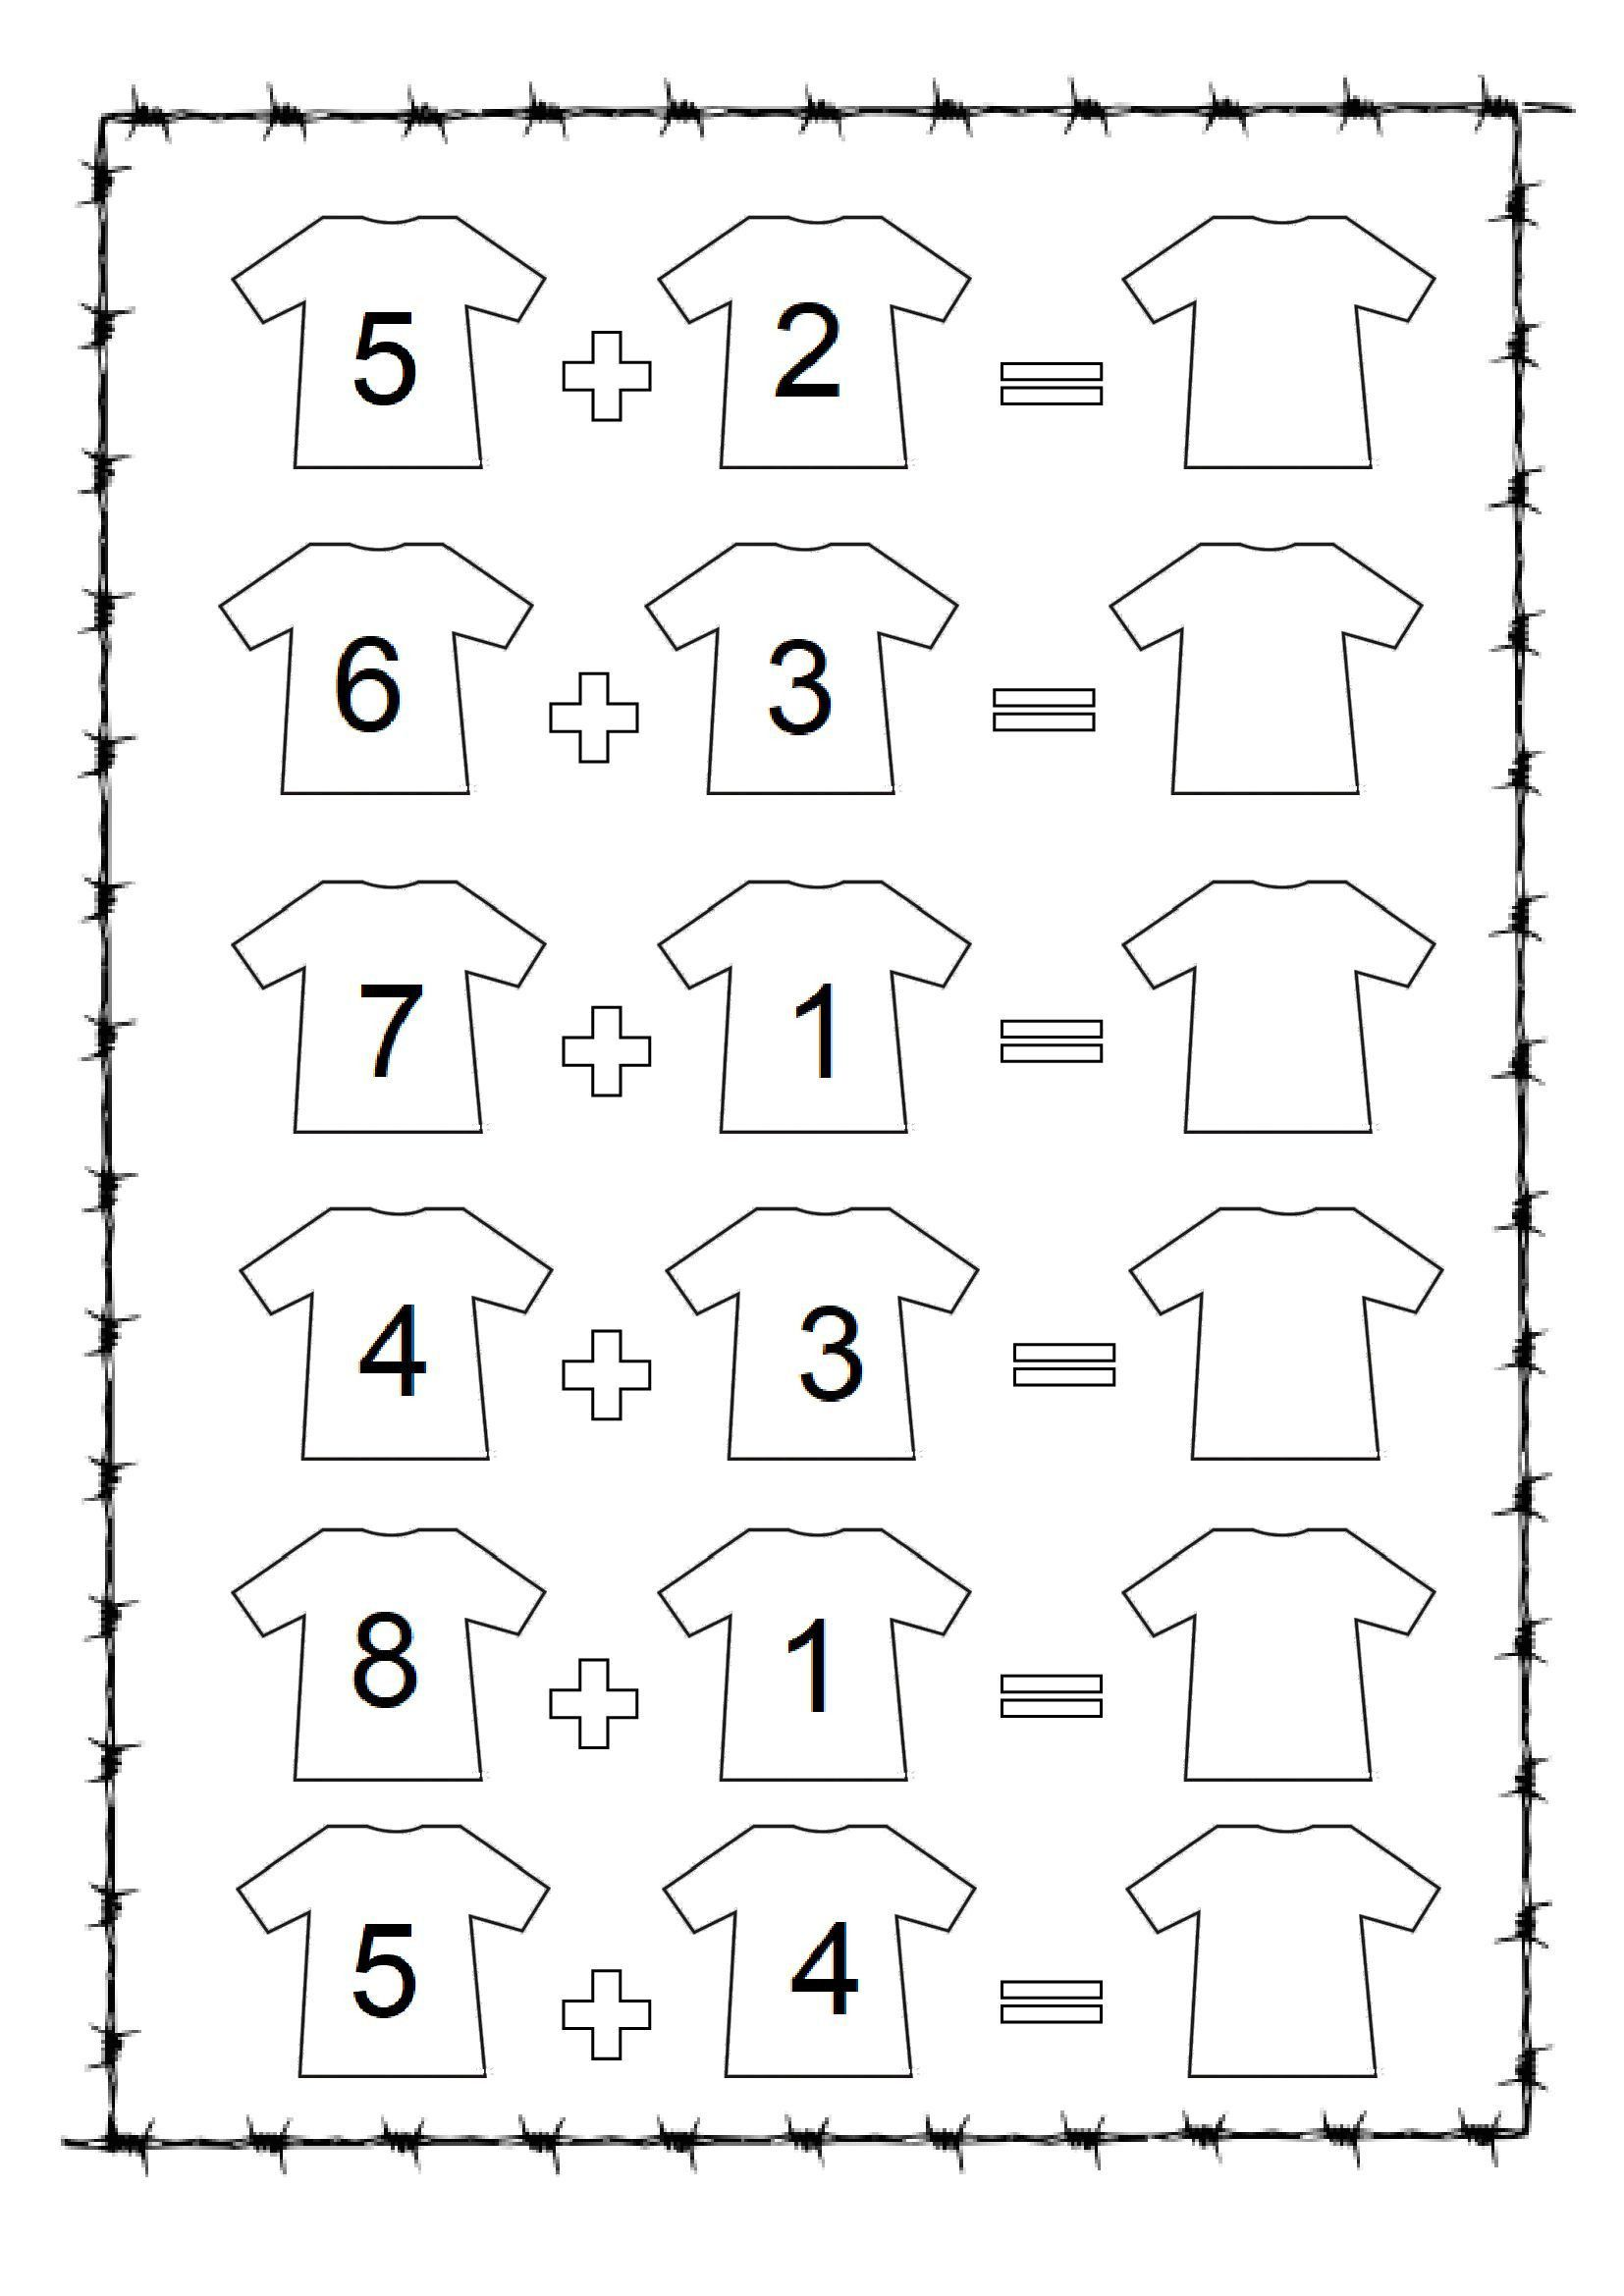 Kindergarten Math Worksheet Pdf Missing Number Worksheet